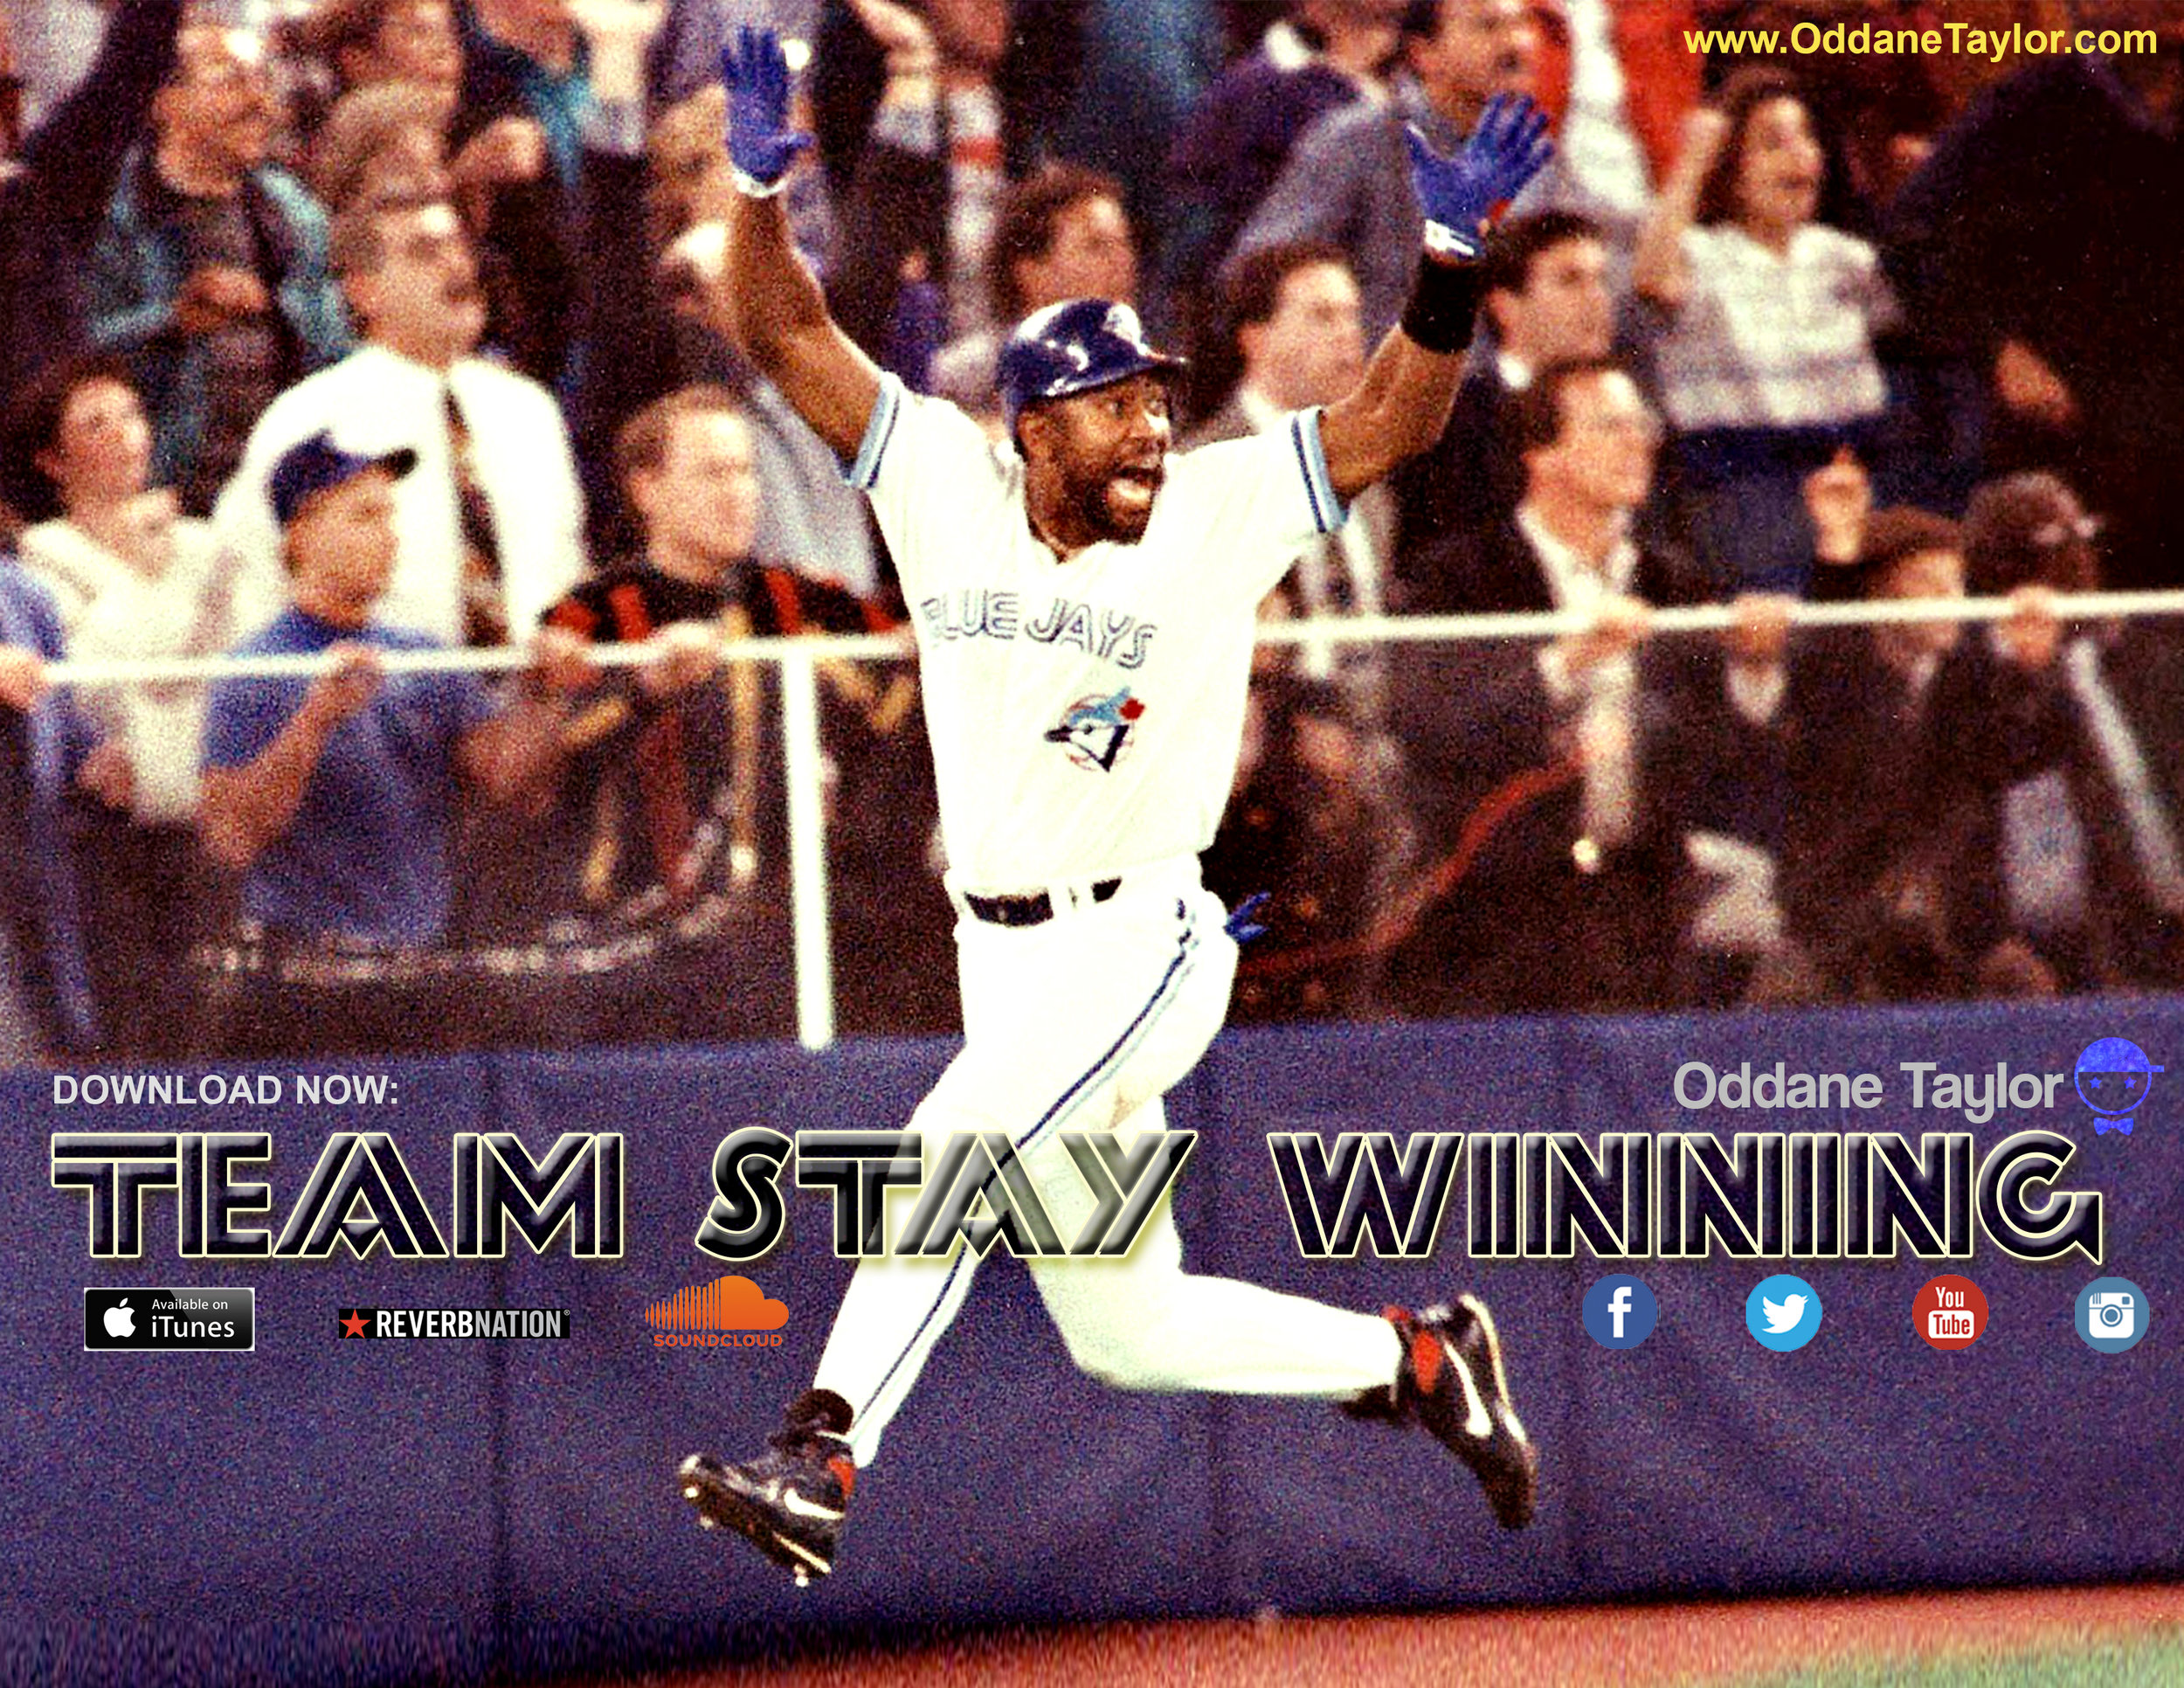 Team stay winning cover 1.jpg